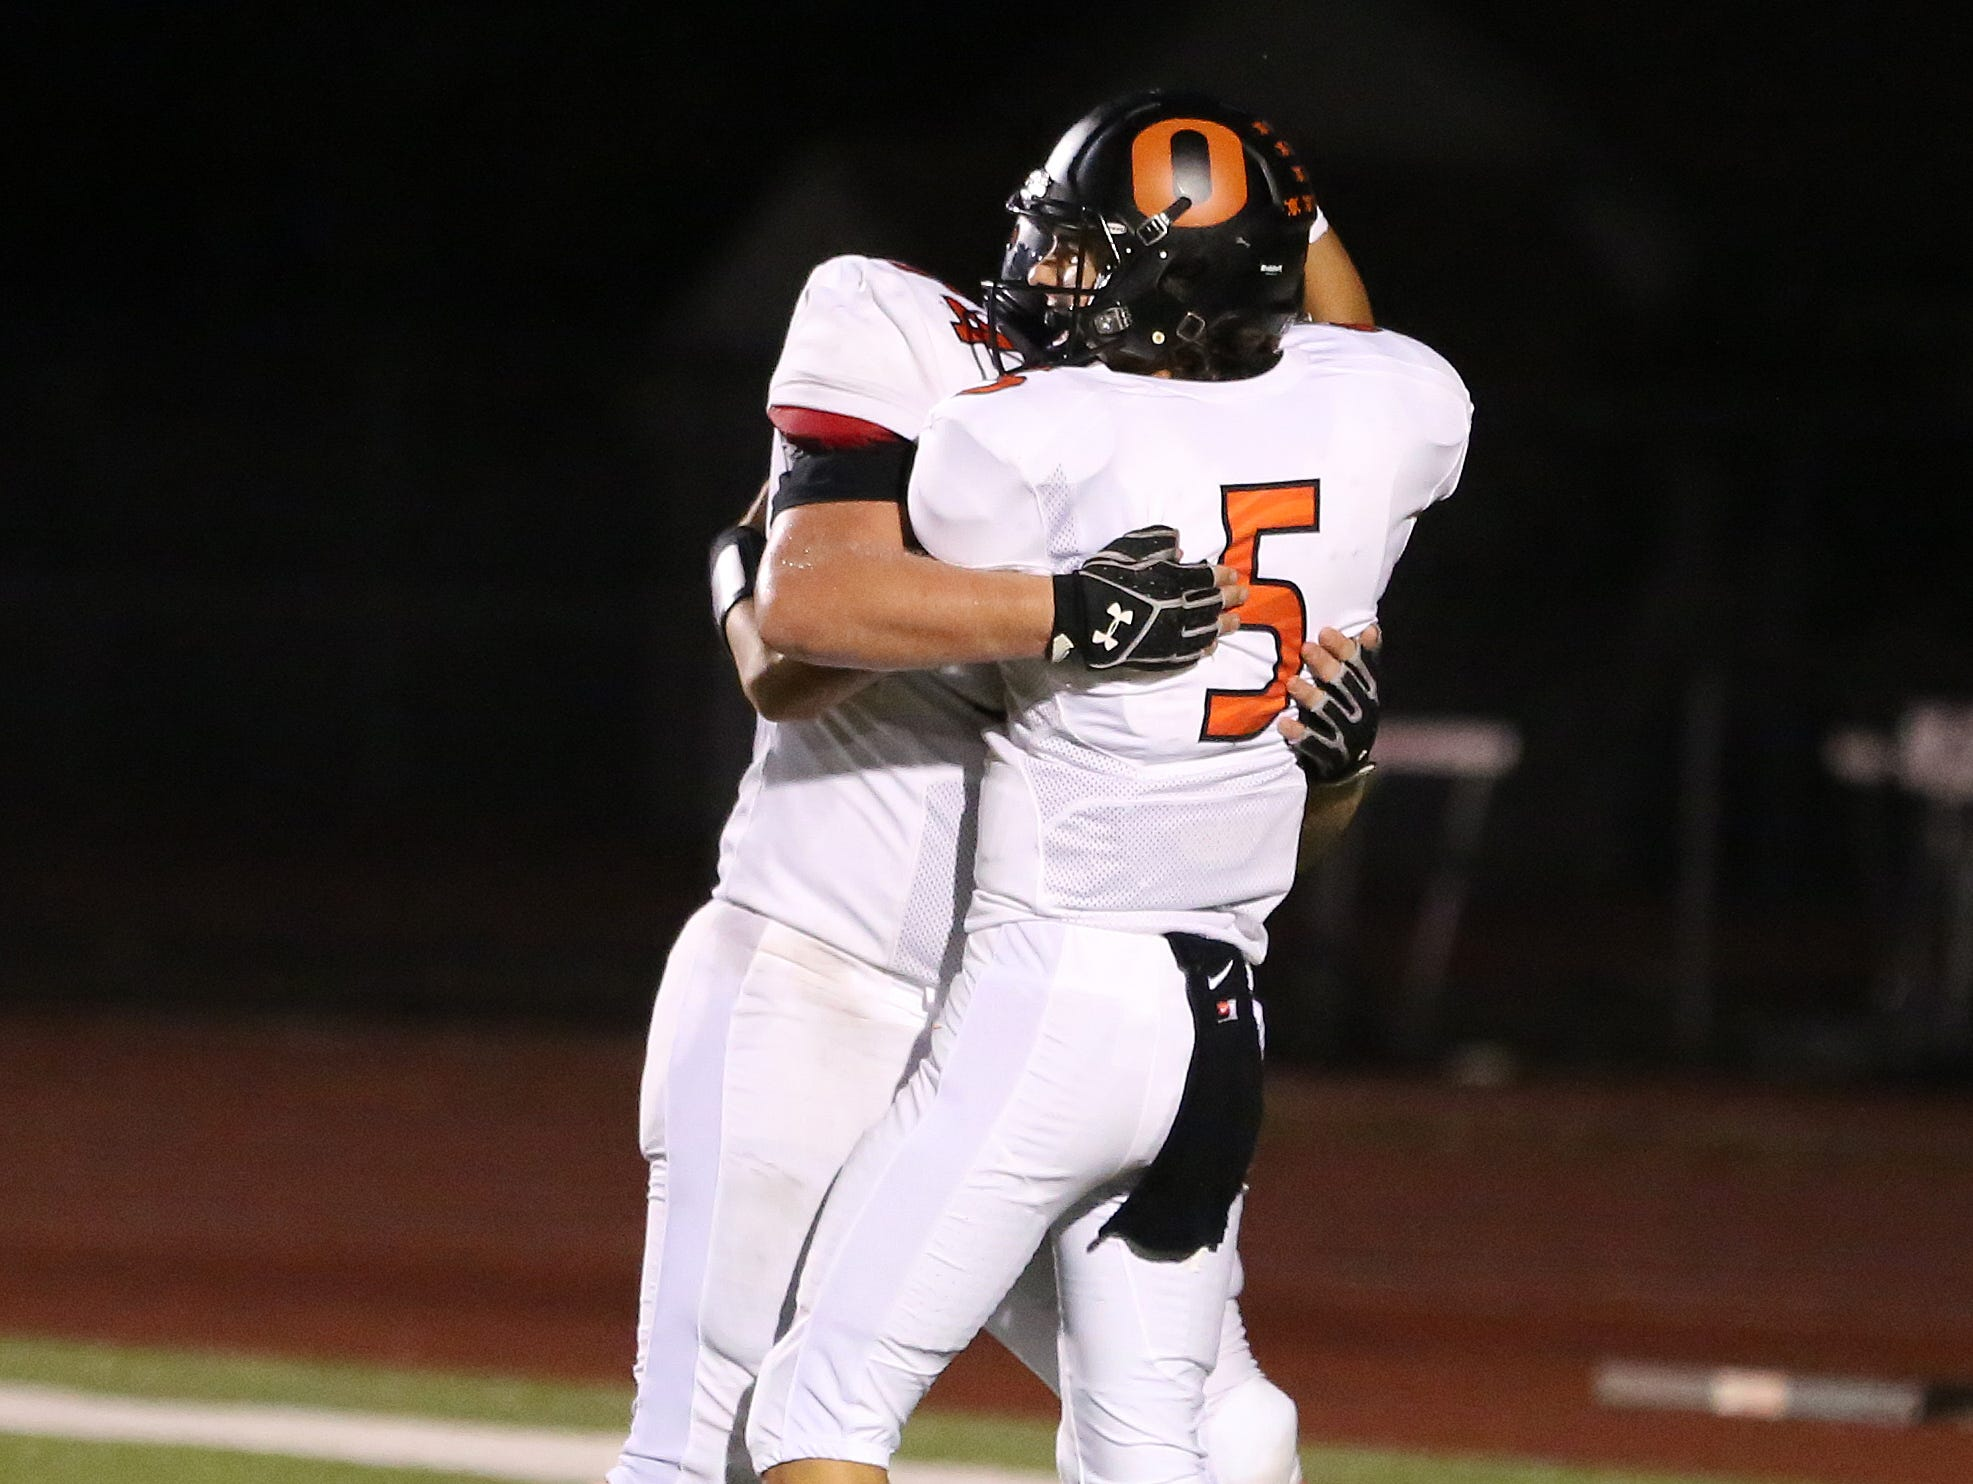 Sprague's Spencer Plant (No. 5) celebrates a touchdown against the McMinnville Grizzlies in Greater Valley Conference game on Friday, Sept. 23, 2016, in McMinnville.